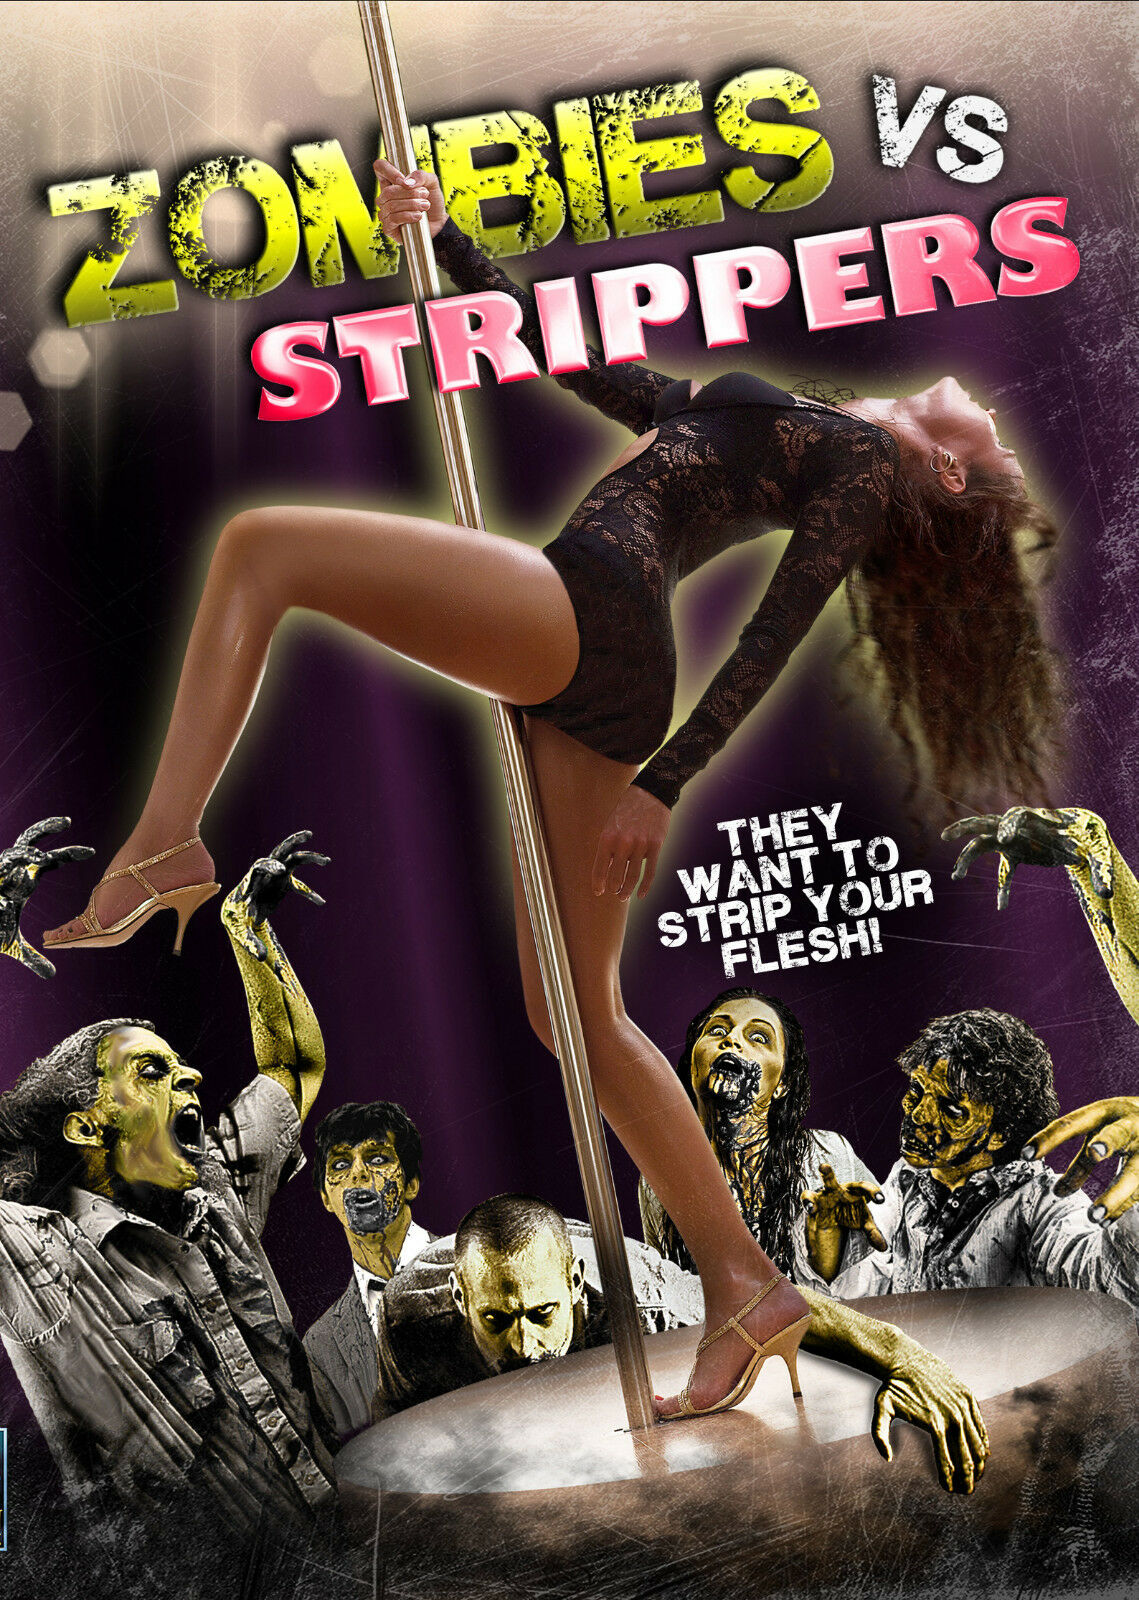 Women sex zombies vs striper nude bikini top